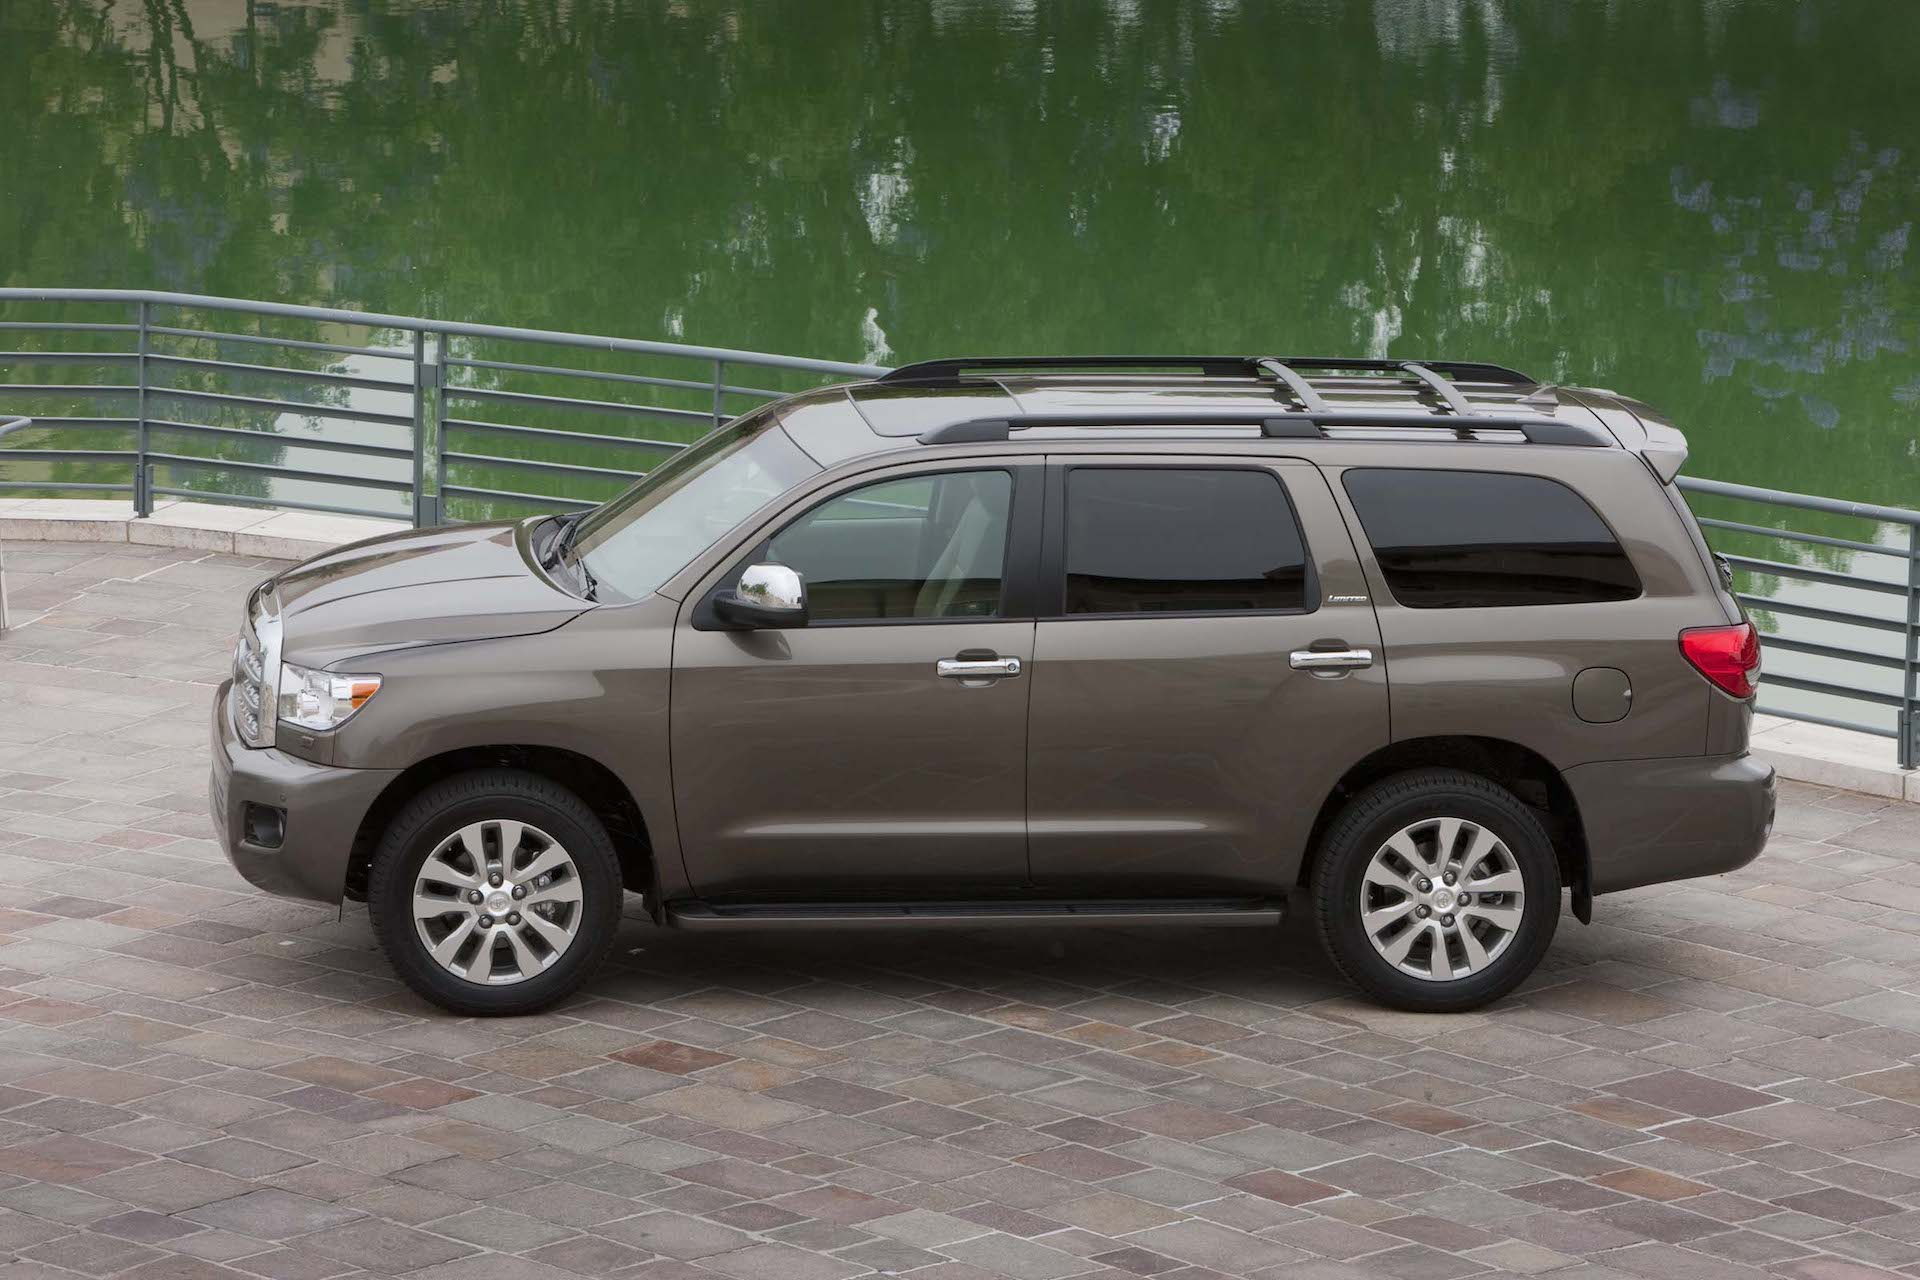 2015 toyota sequoia quality review the car connection. Black Bedroom Furniture Sets. Home Design Ideas